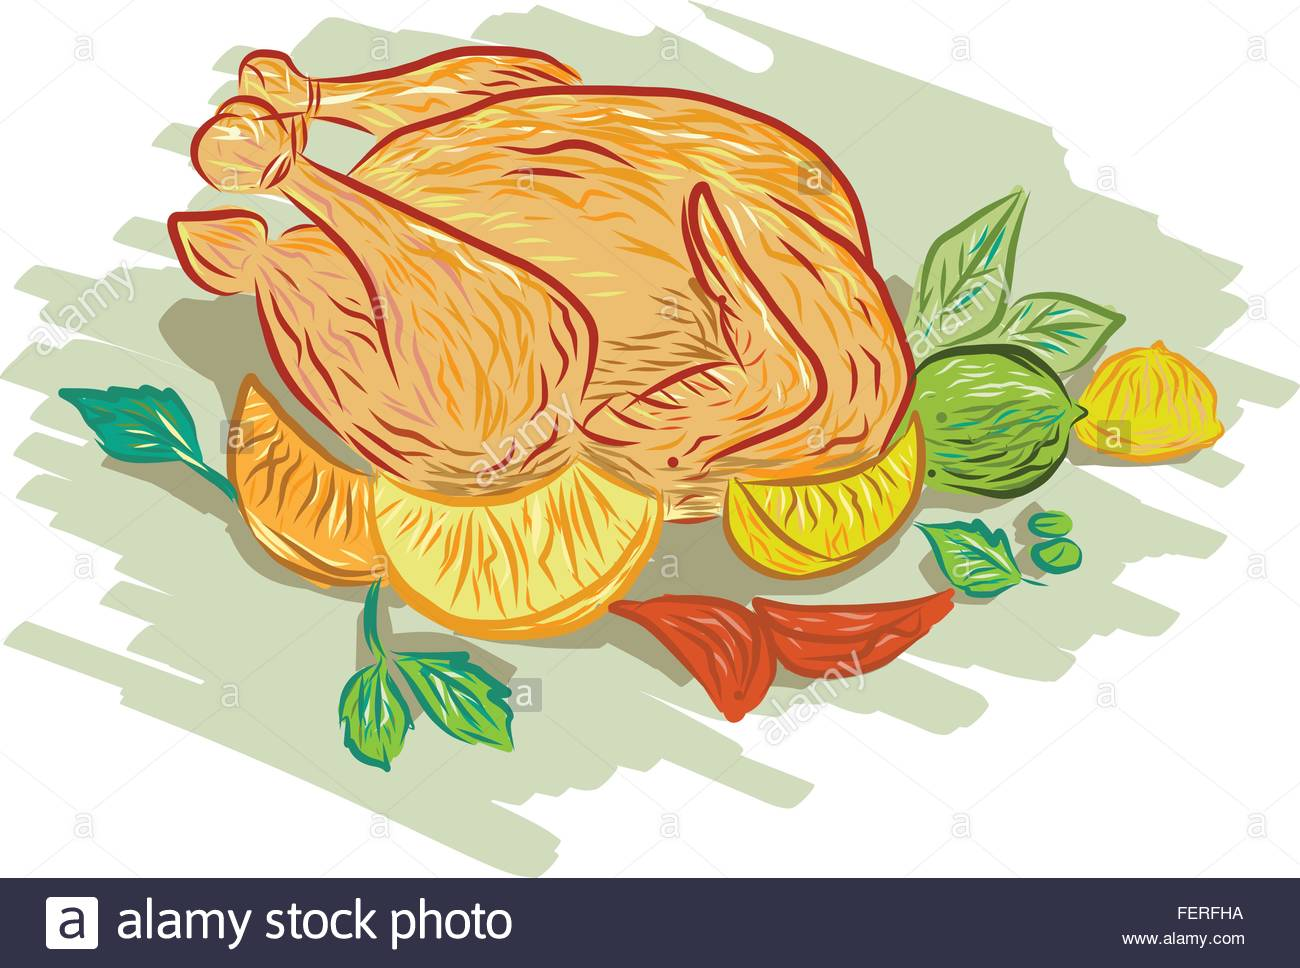 1300x968 Drawing Sketch Style Illustration Of Roast Chicken And Vegetables